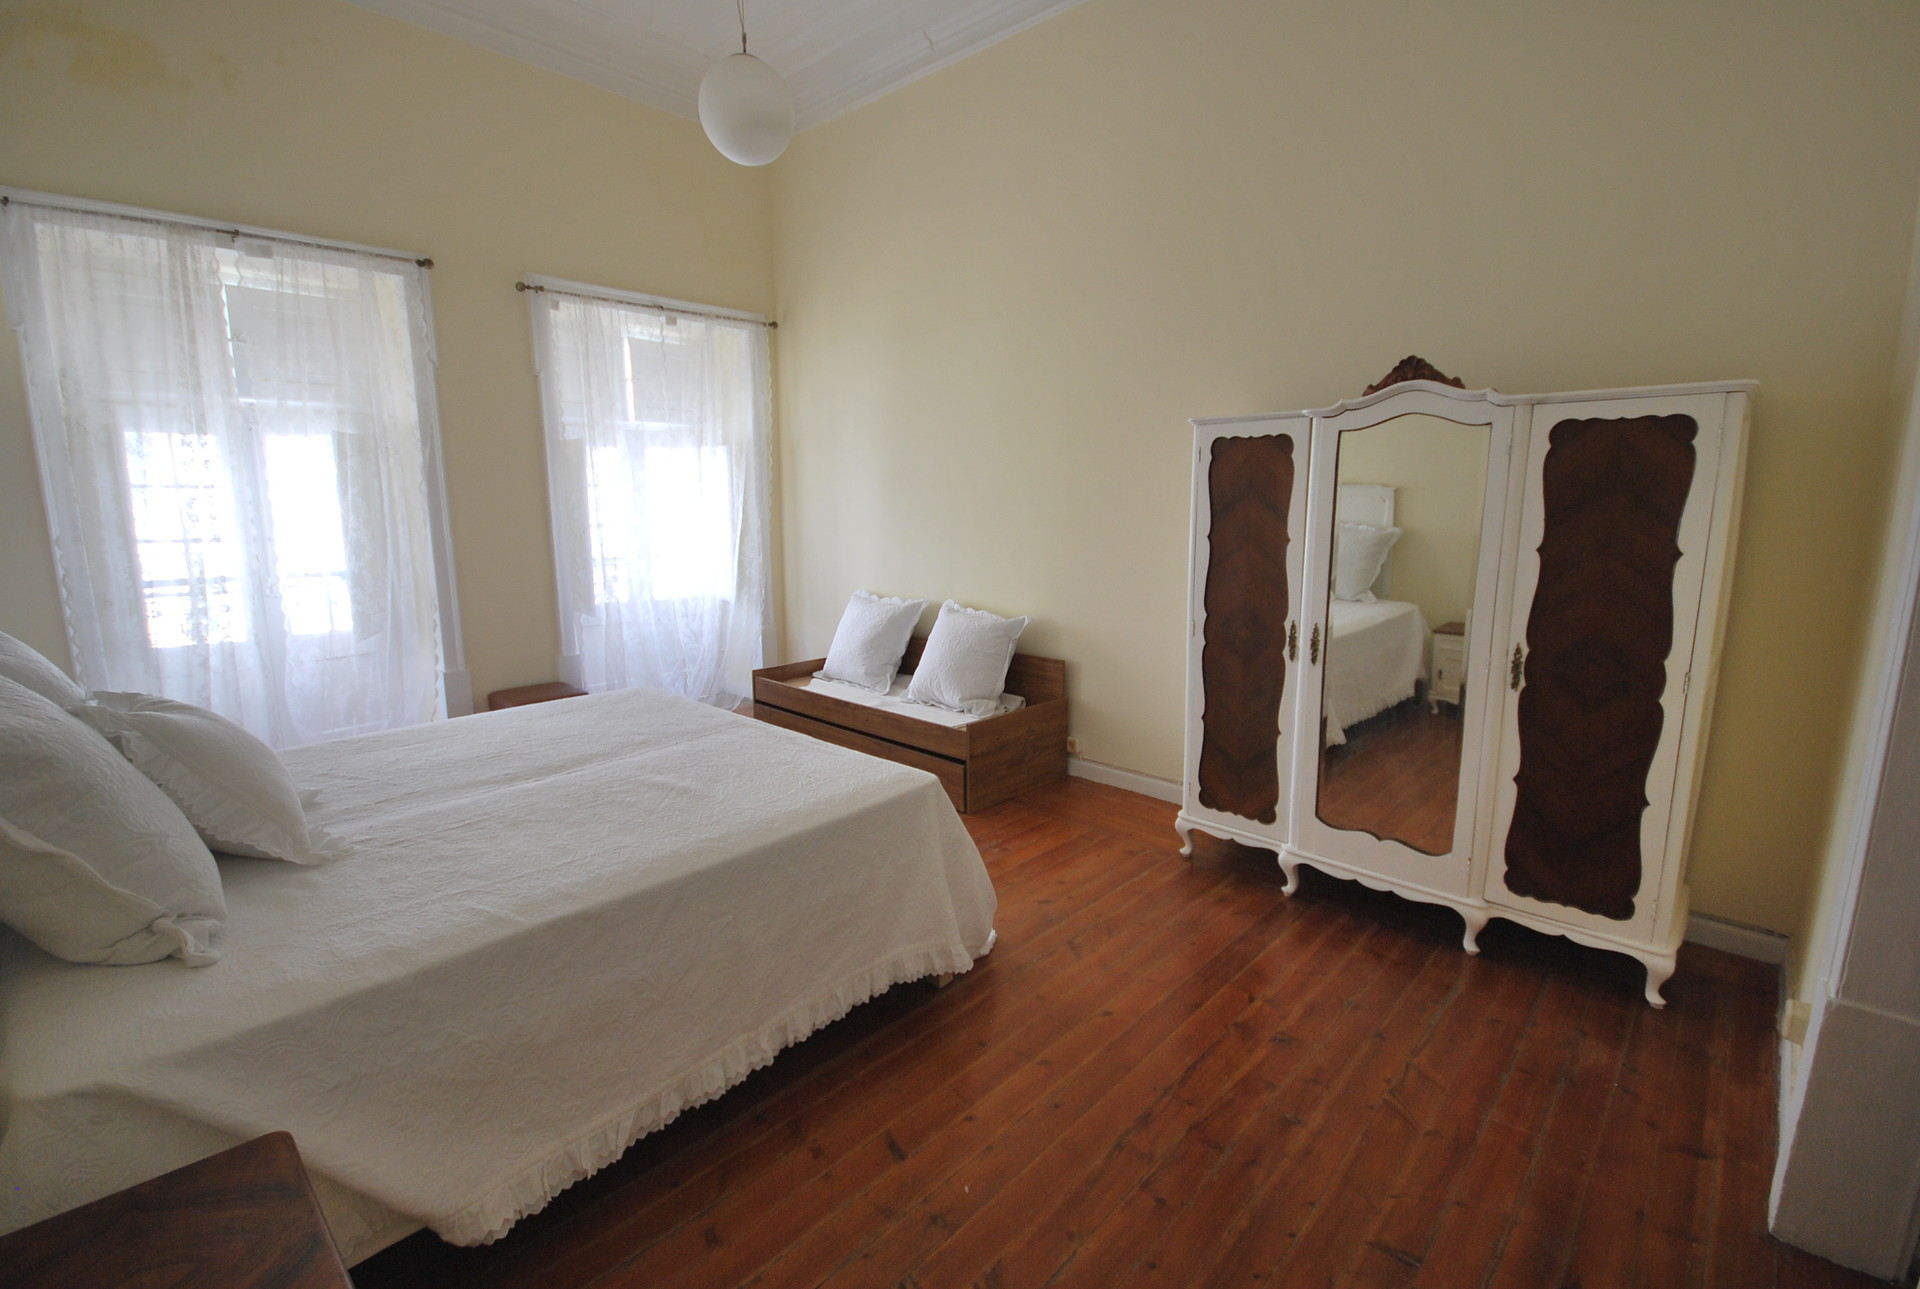 extra-large-rooms-in-traditional-amanzing-house-6c7de493a7491654e2b07e60284a18ff